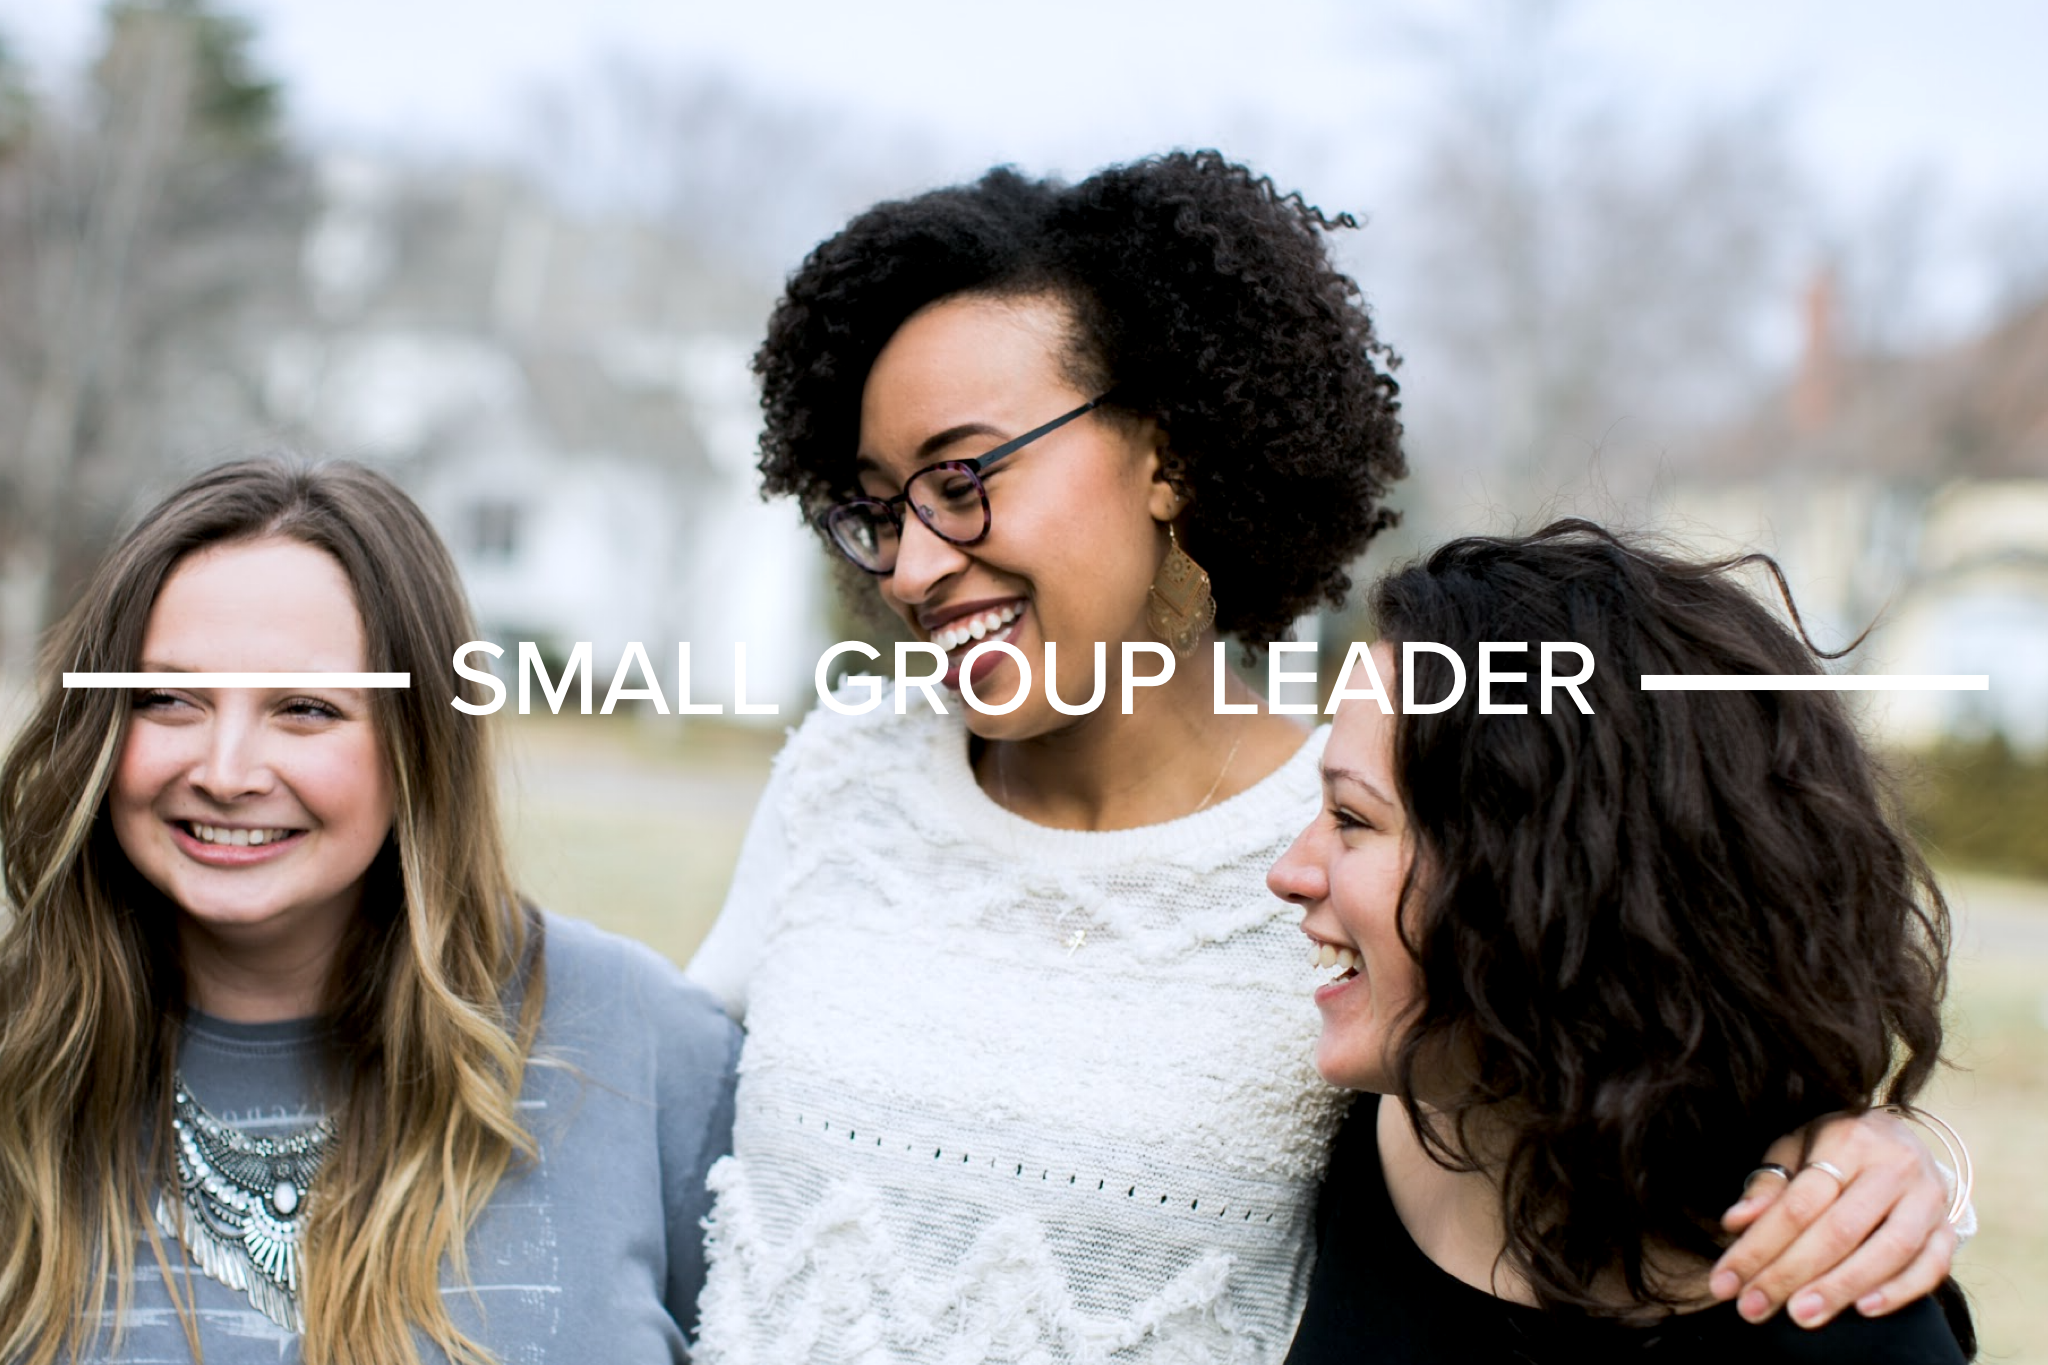 SMALL GROUP LEADER - We have Radiant Small Groups all around the Kansas City metro. These leaders cultivate relationships & individual growth by facilitating small groups.